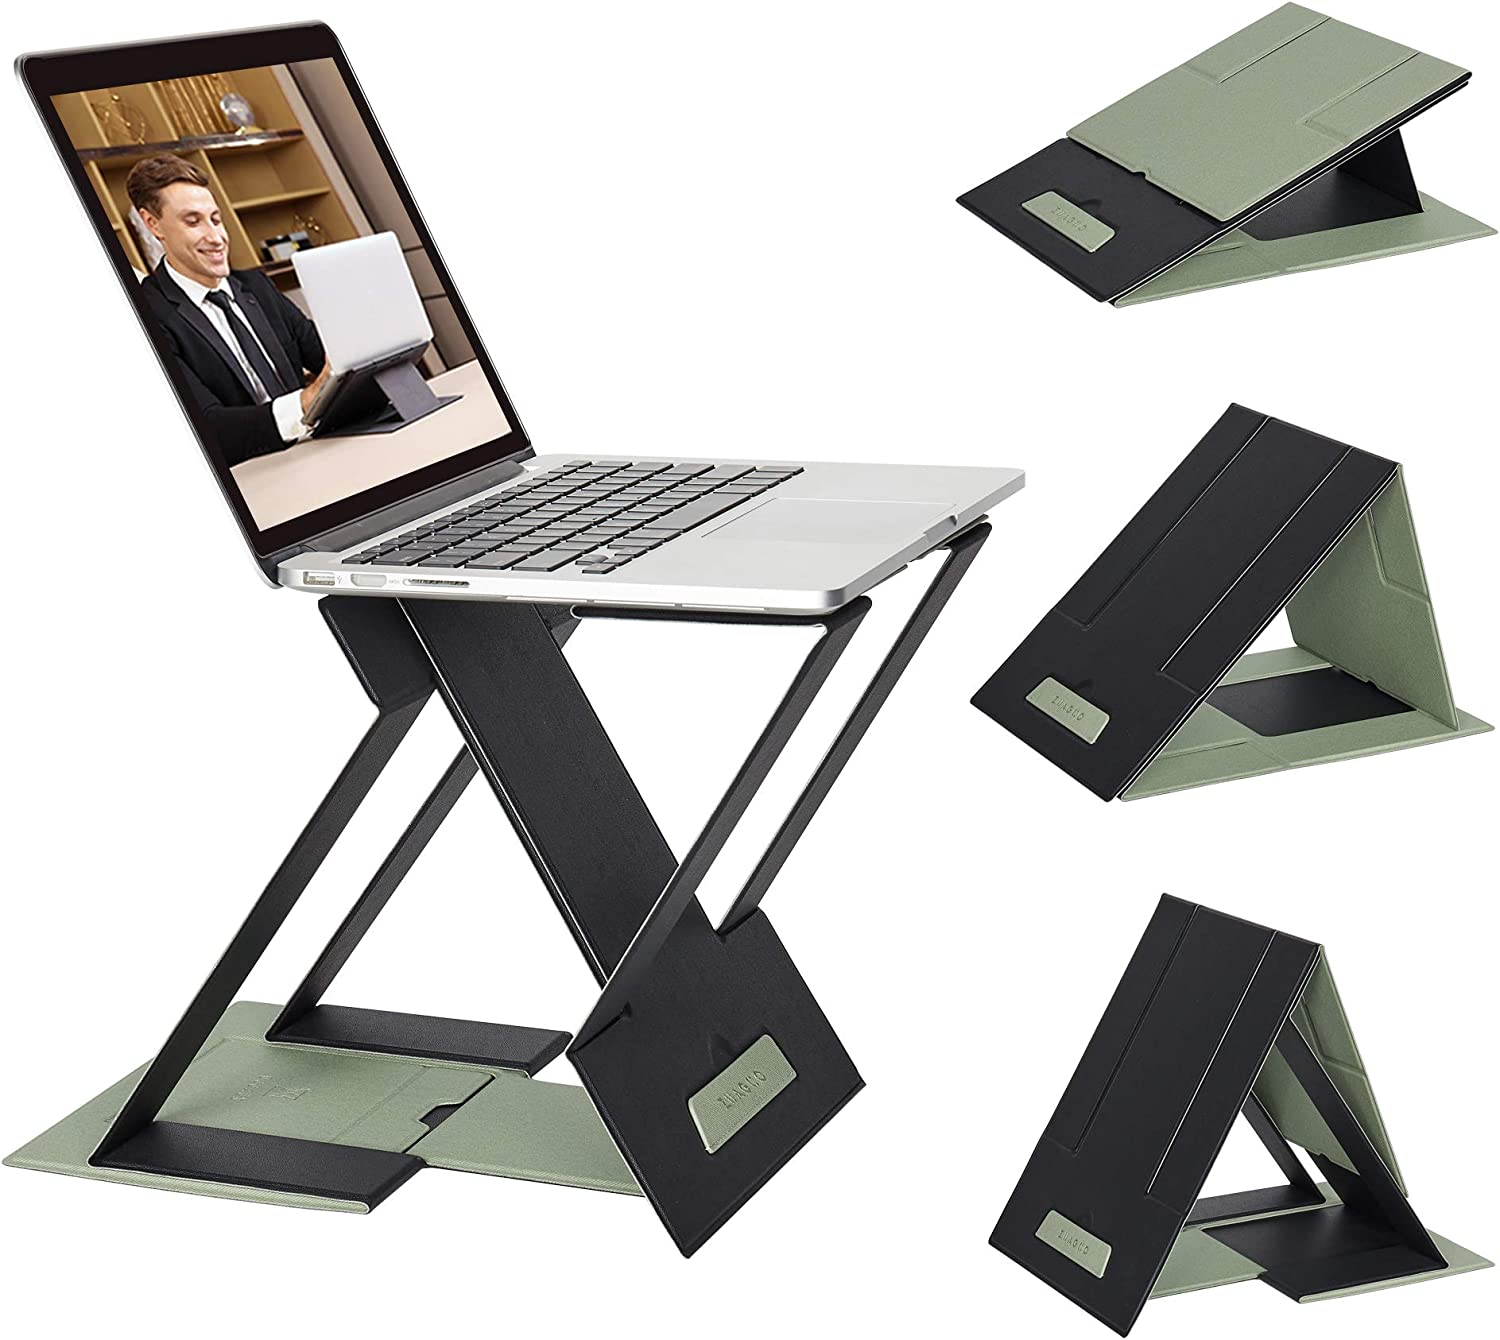 NTQ Portable Laptop Desk, Adjustable Laptop Stand for Bed, Couch, Laptop Riser Tablet Stand Holder, Compatible with MacBook, Air, Pro, Lenovo and More 10-15.6 Inch Laptop & Tablets (Green)